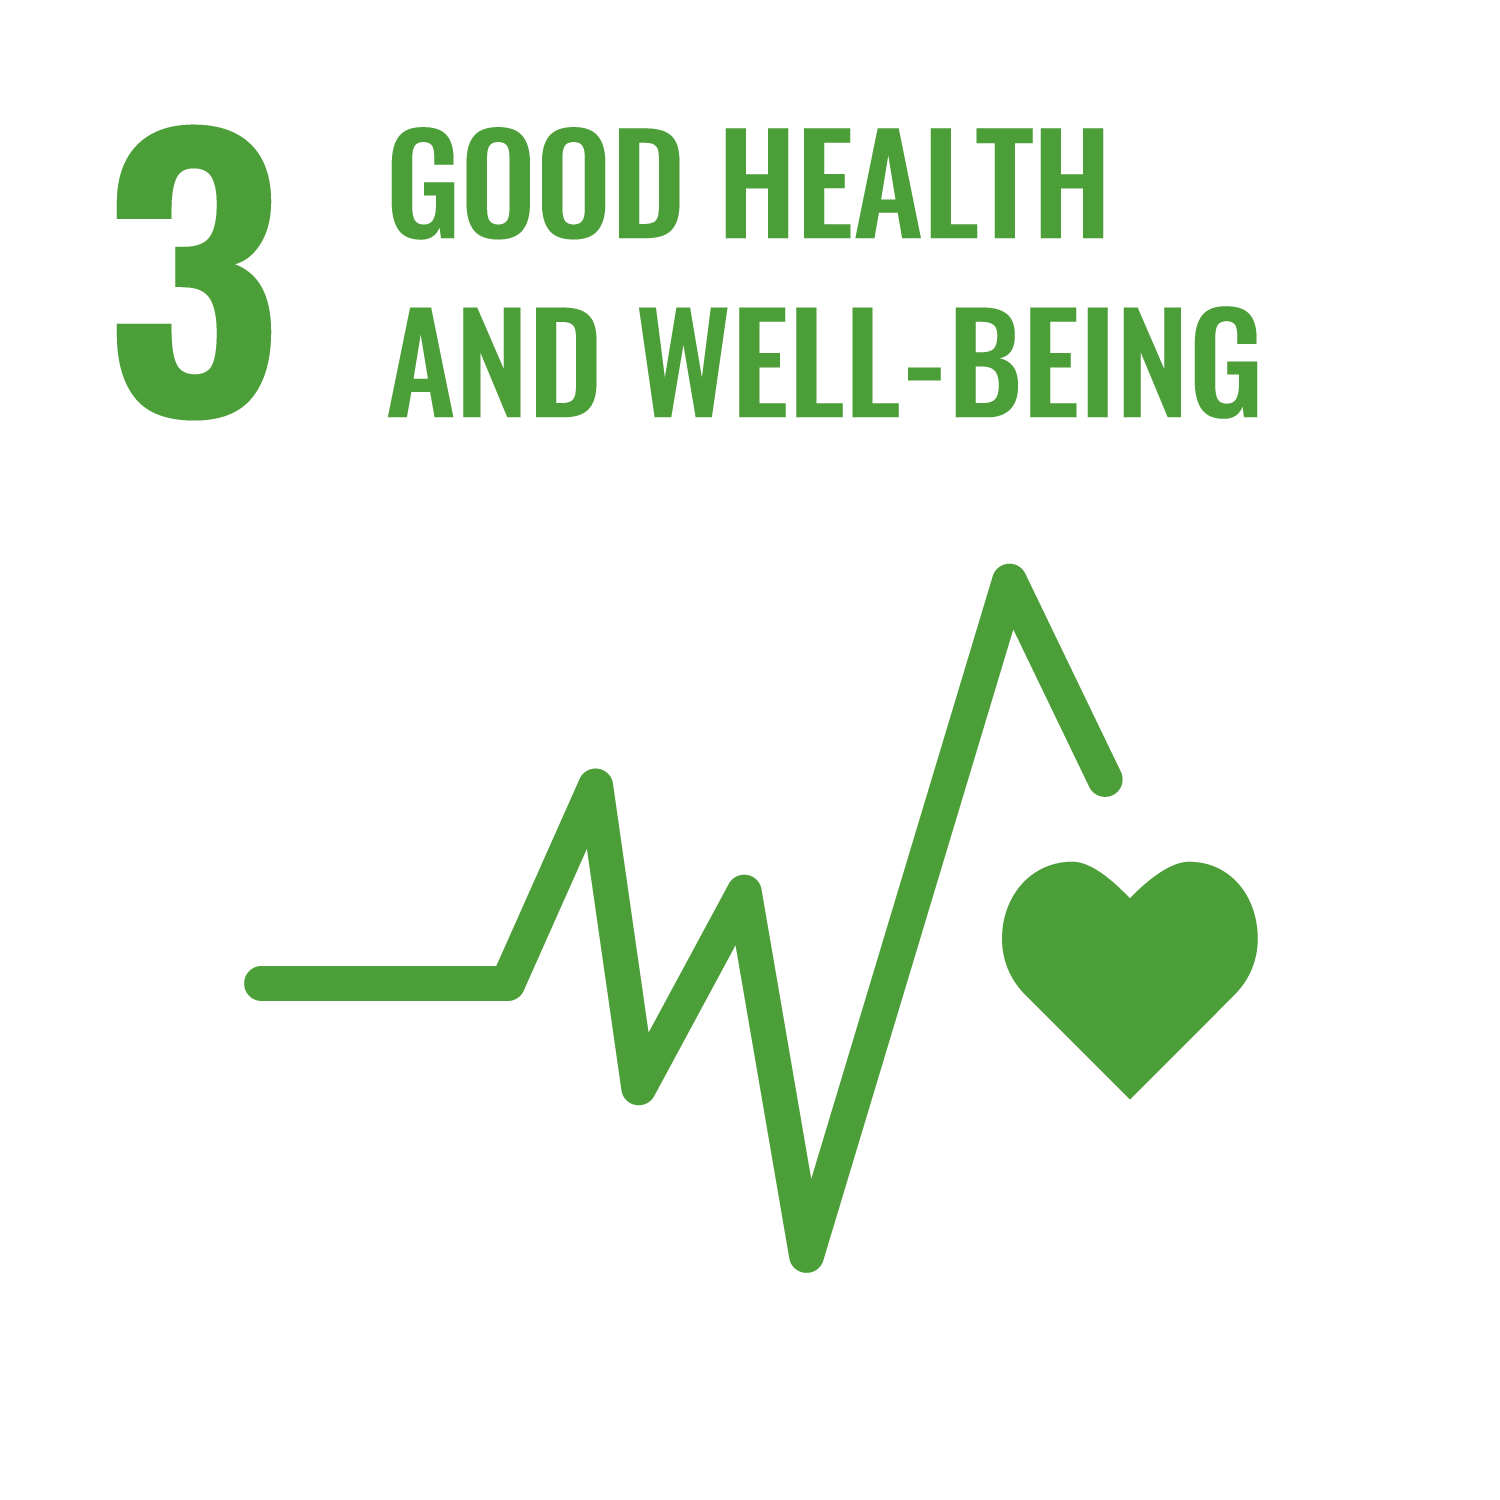 (3) Good Health and Wellbeing